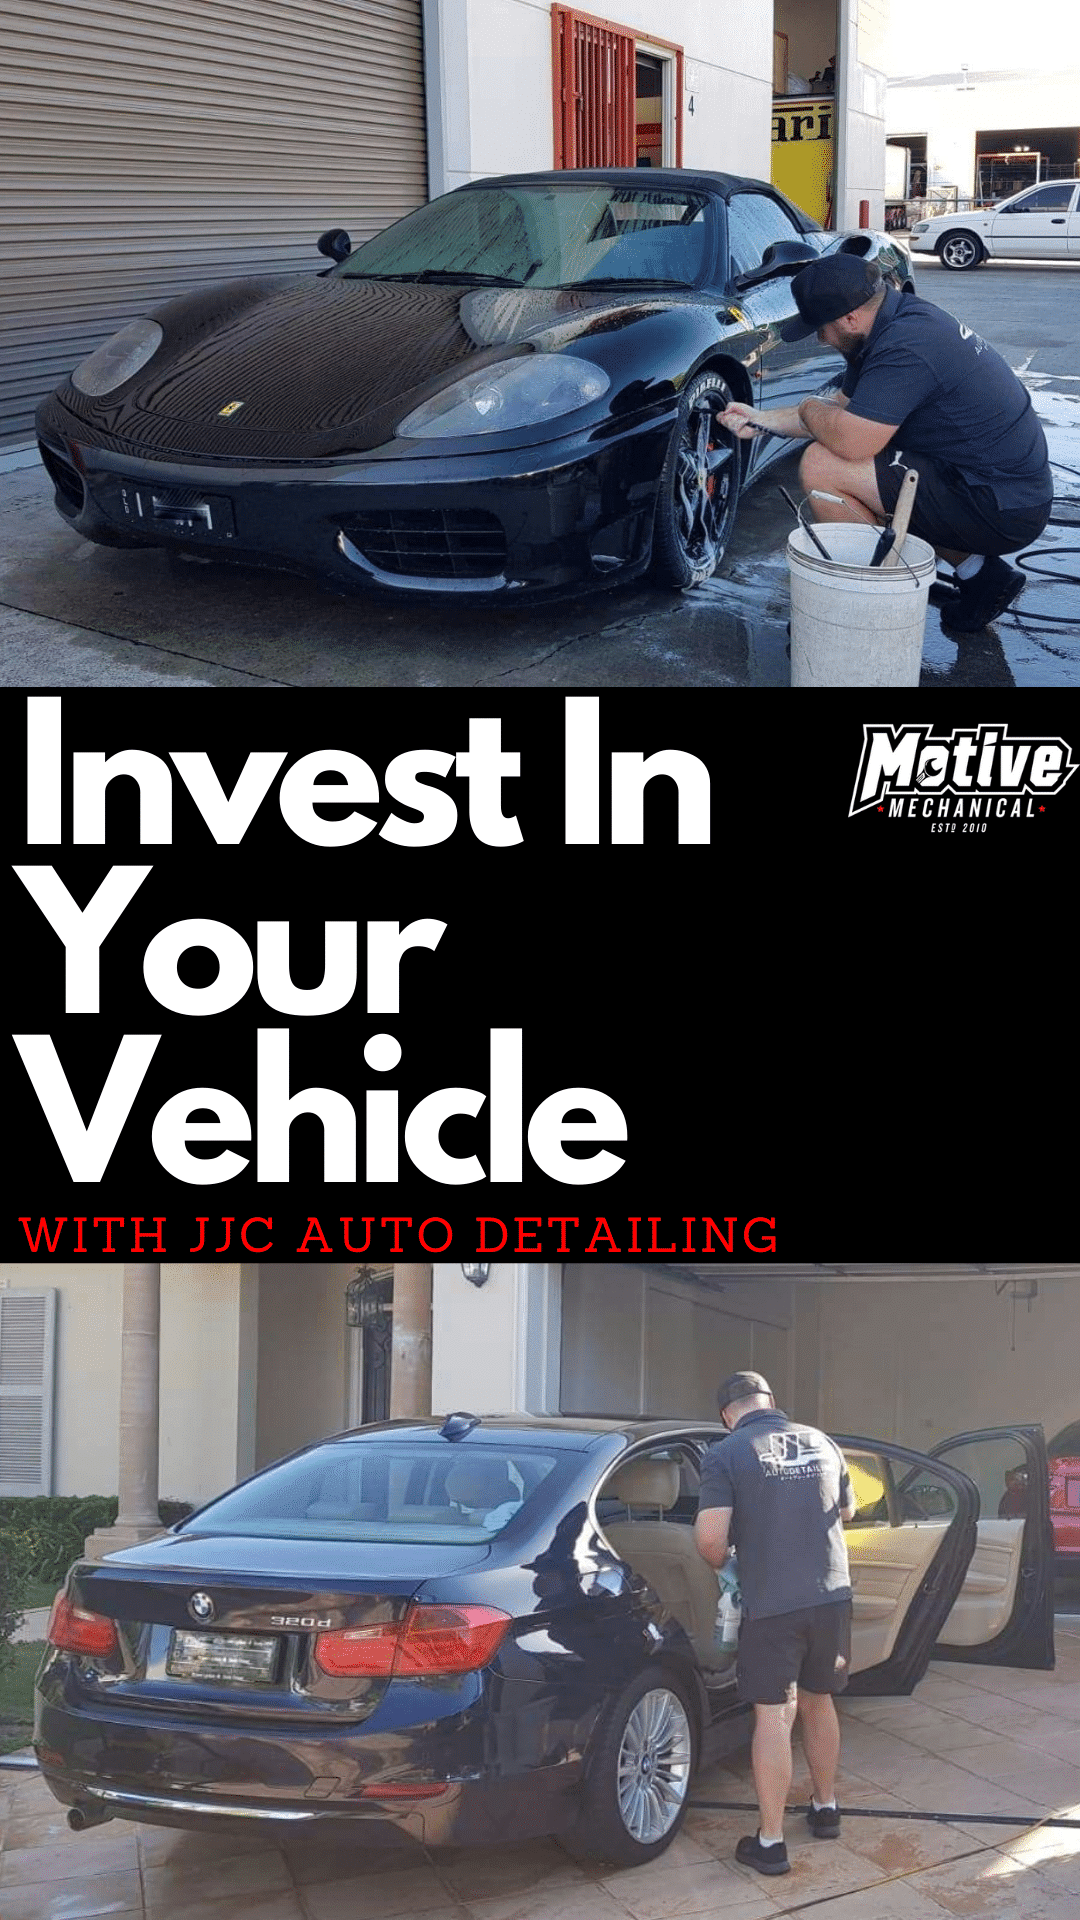 Invest in Your Vehicle